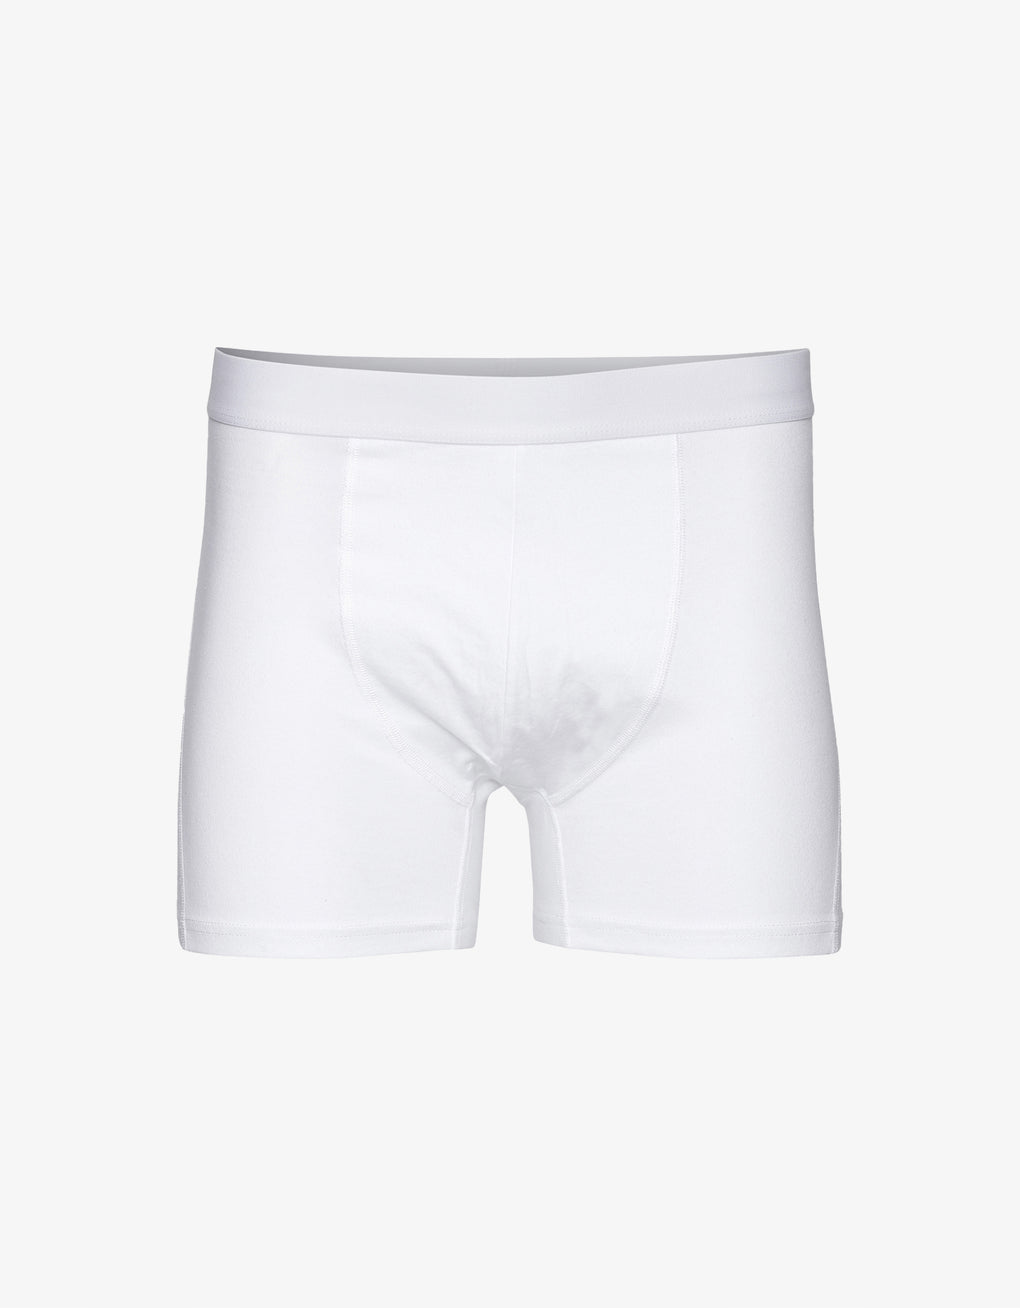 Colorful Standard Classic Organic Boxer Briefs Underwear Optical White